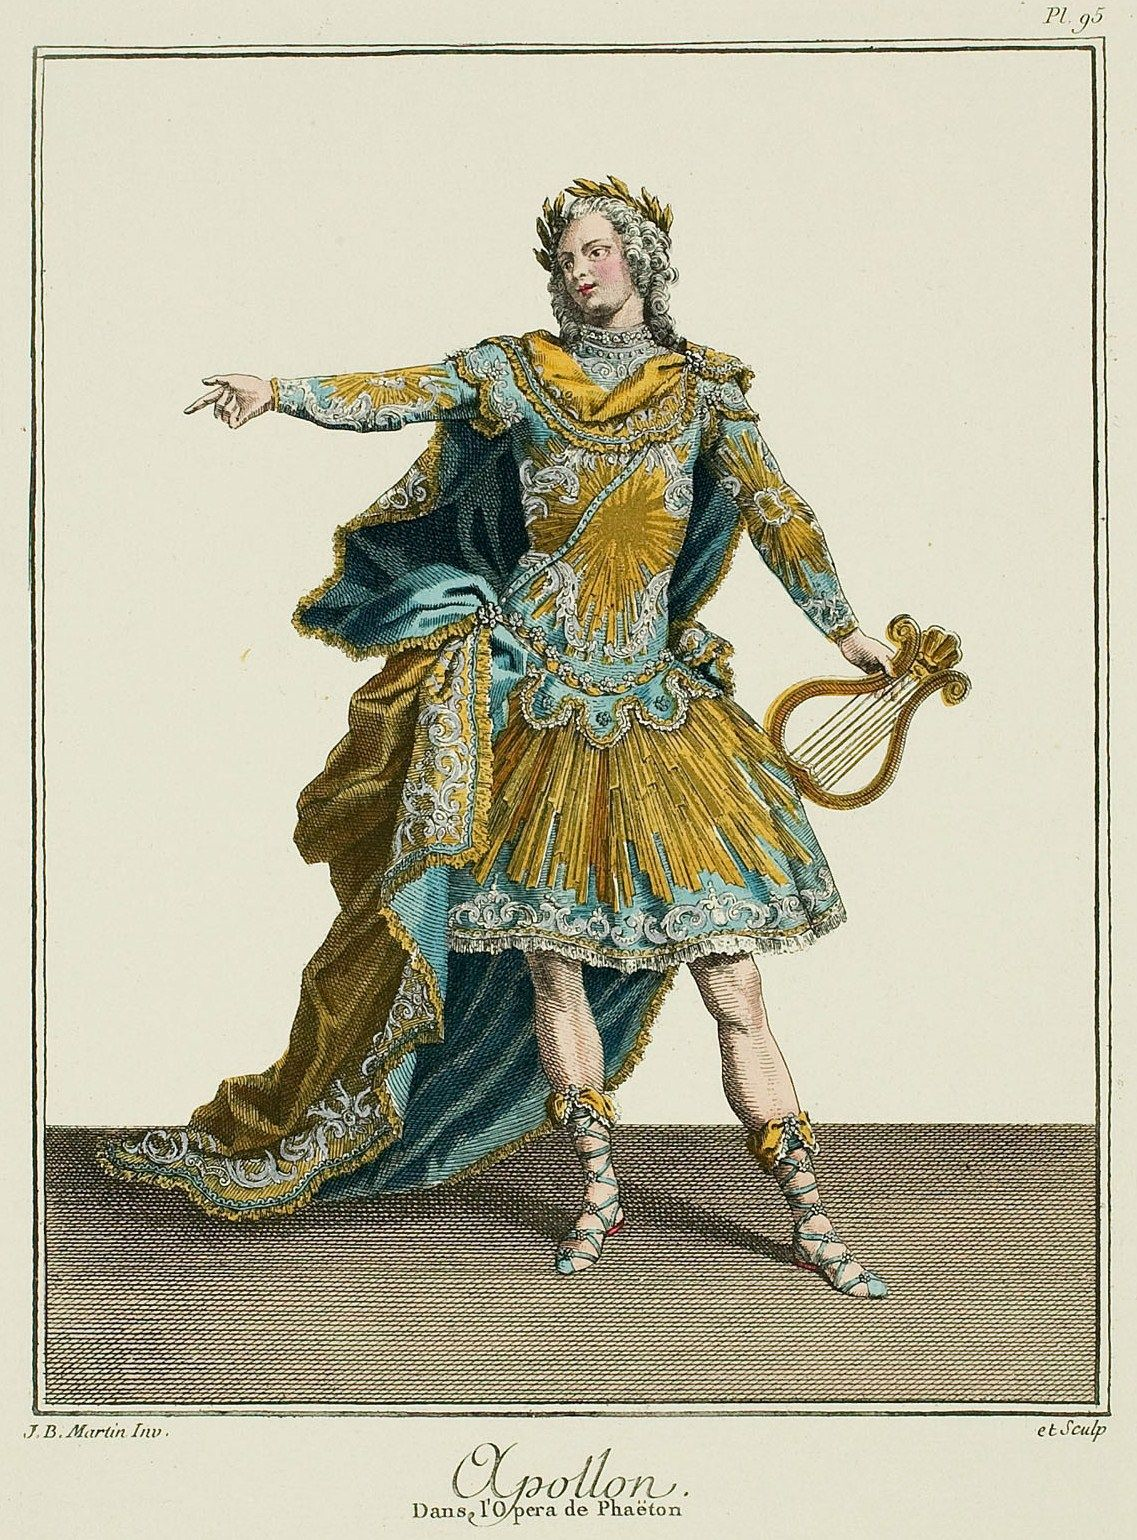 Apollon from the opera of phaeton 1779 france ancien rgime apollon from the opera of phaeton 1779 fandeluxe Images